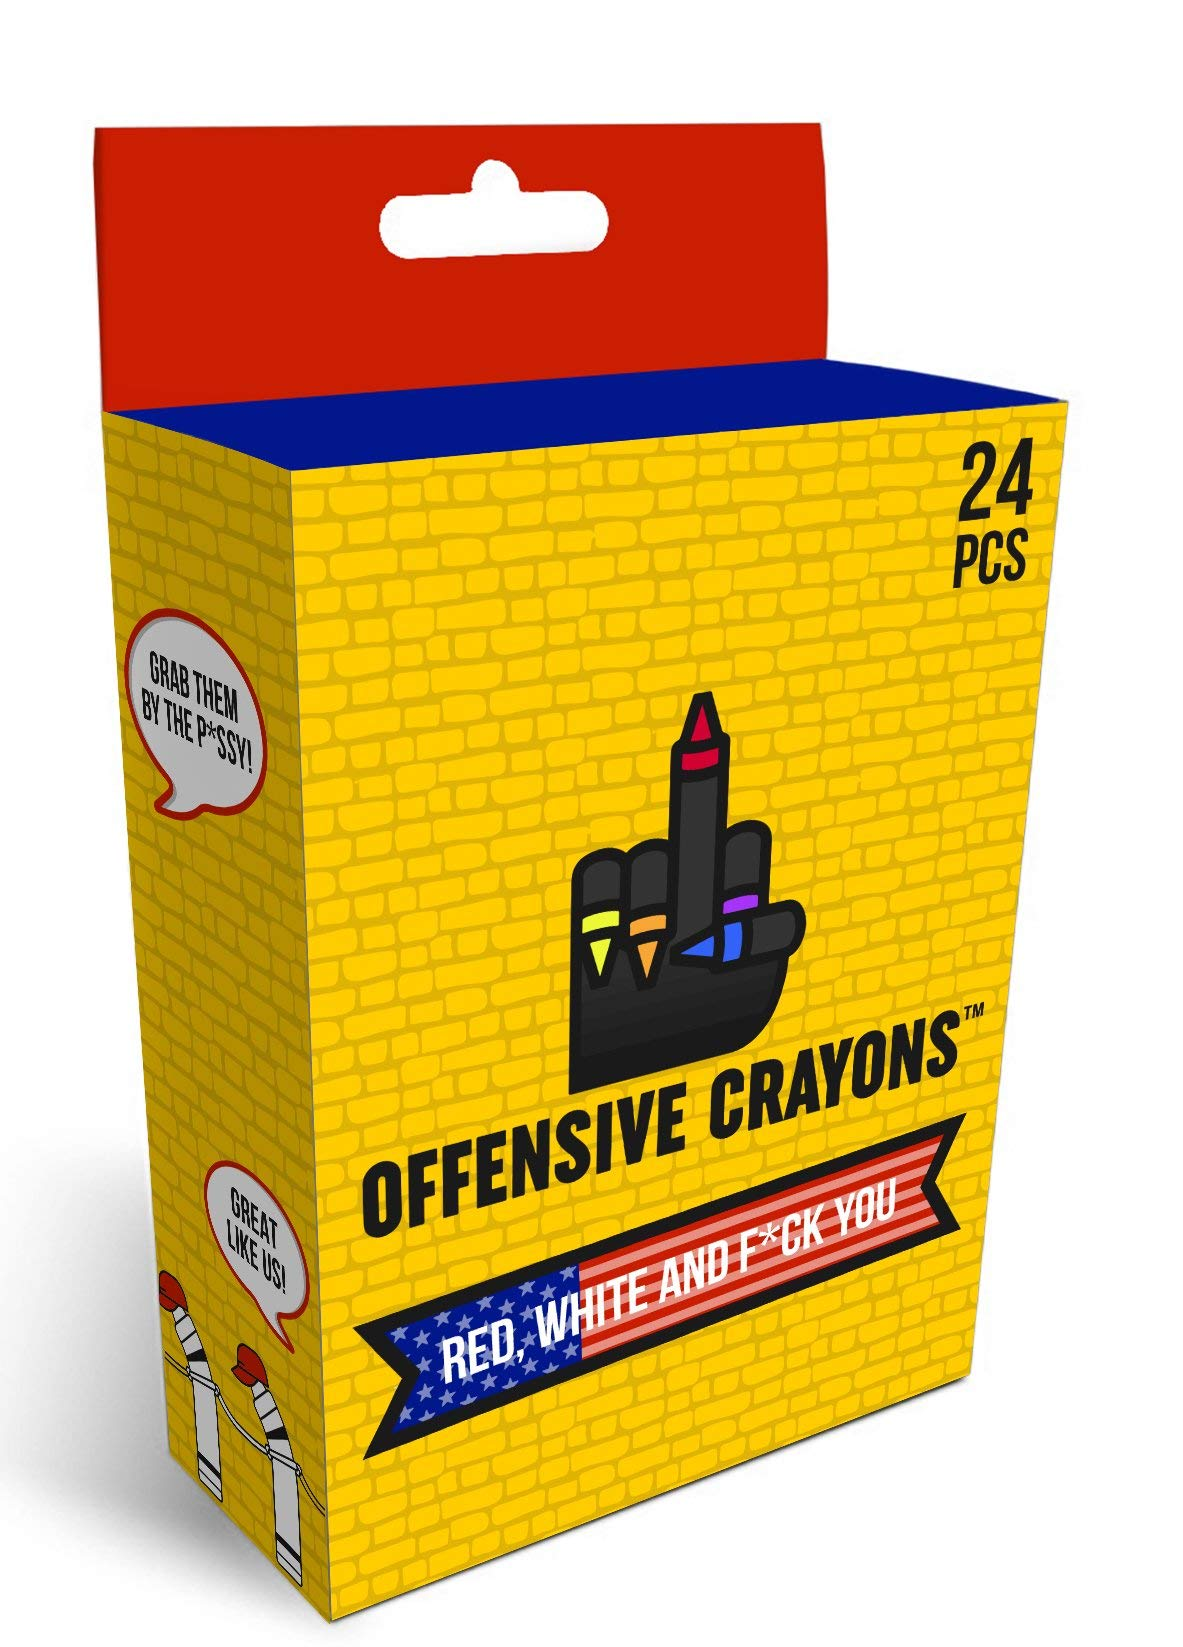 ''Red, White, and FCK You'' Offensive Crayons